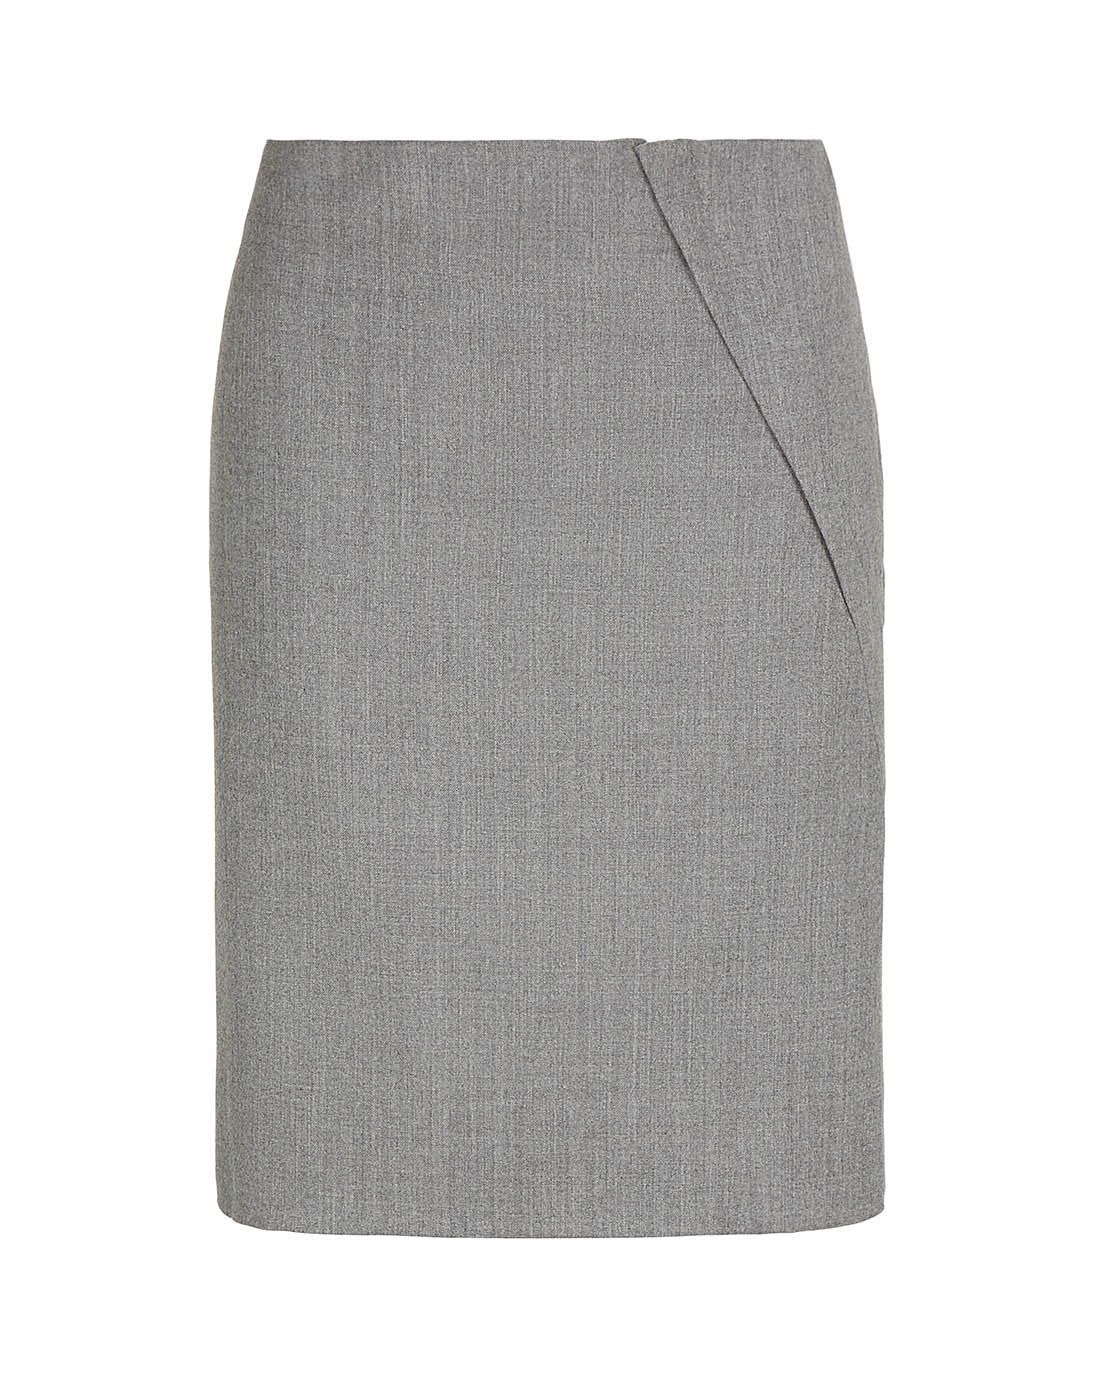 Luxury wool side split knee length pencil skirt for the office grey